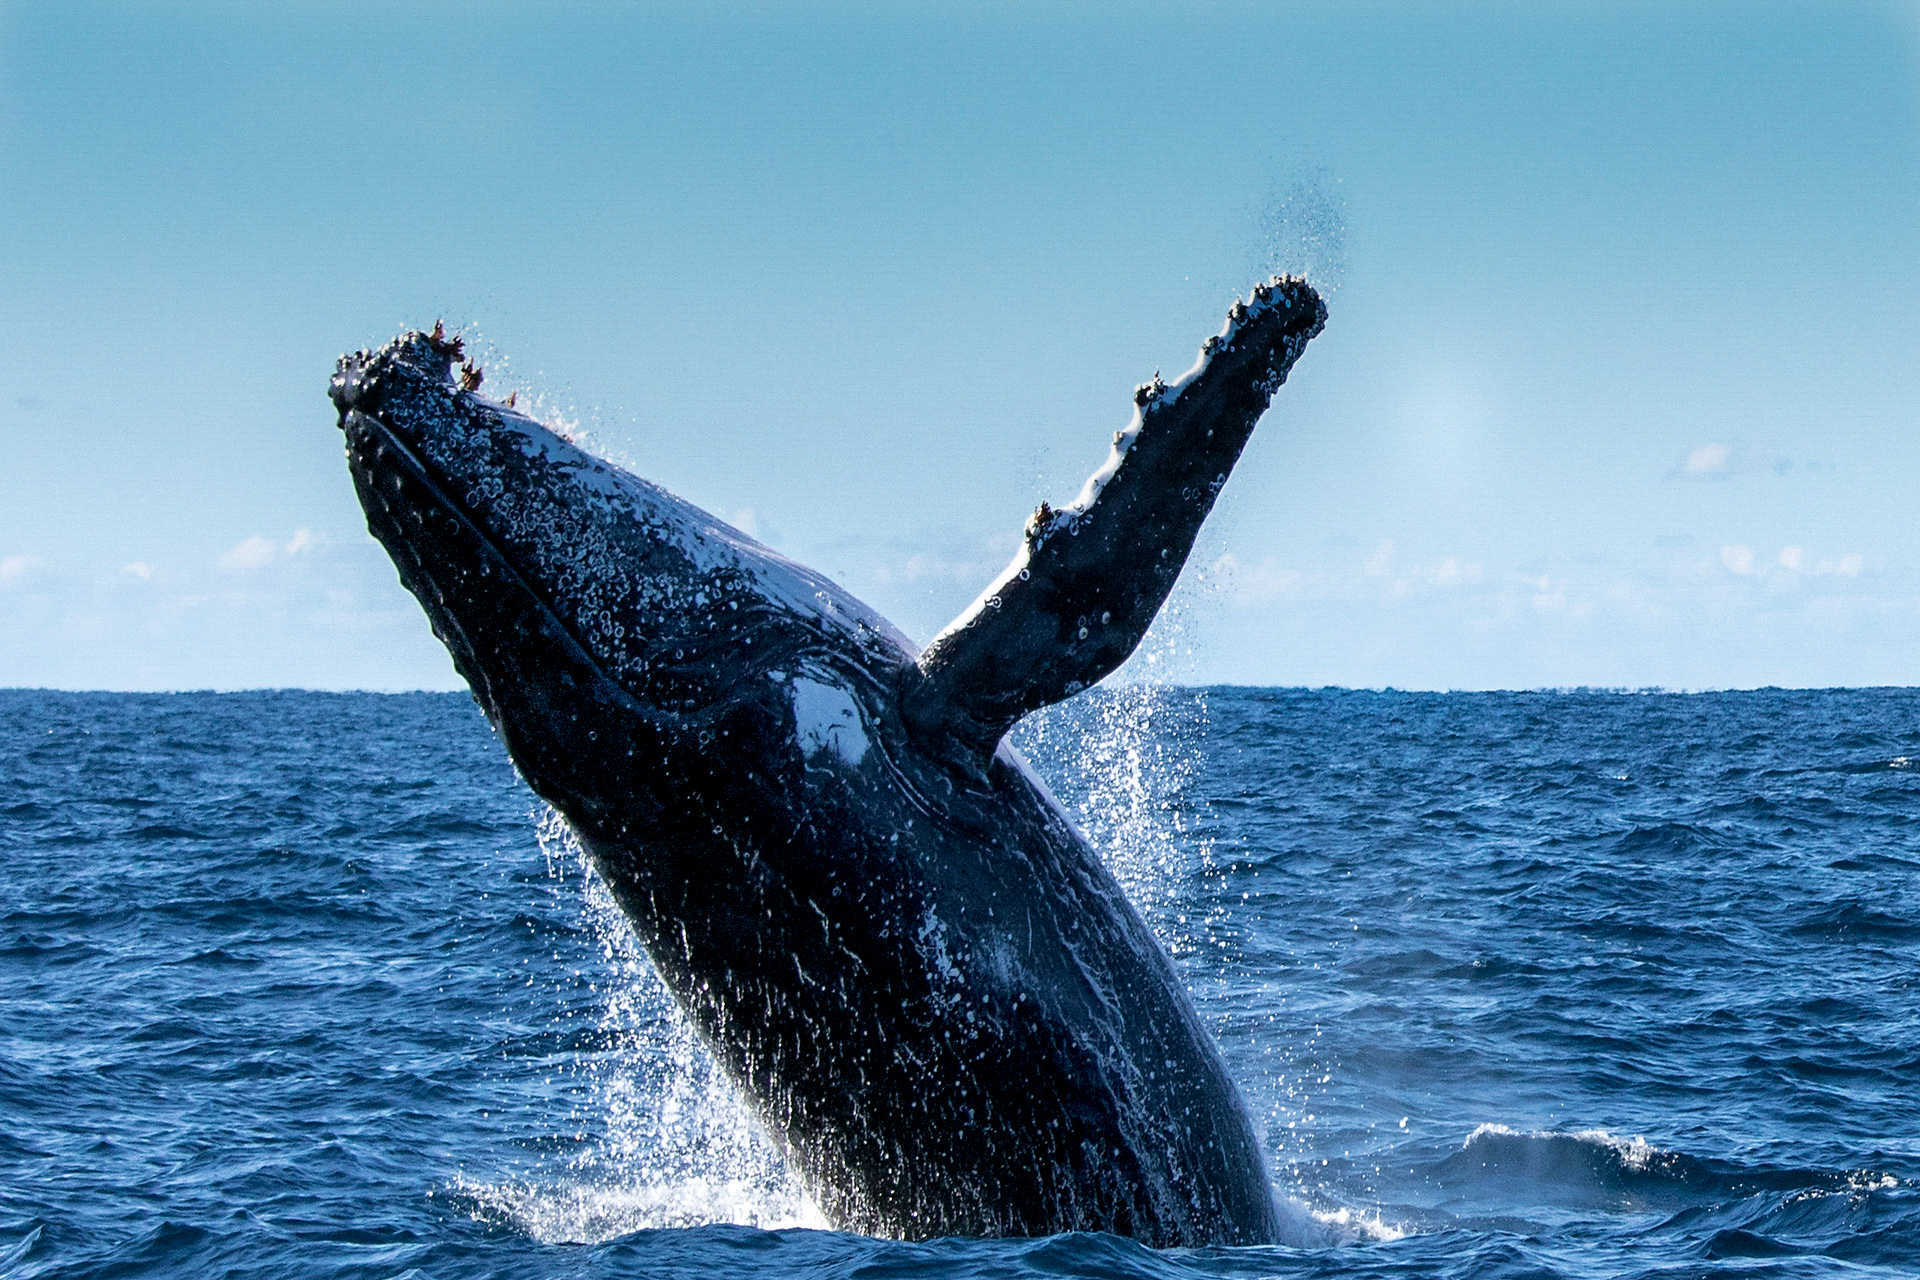 Humpback whales, the grand spectacle